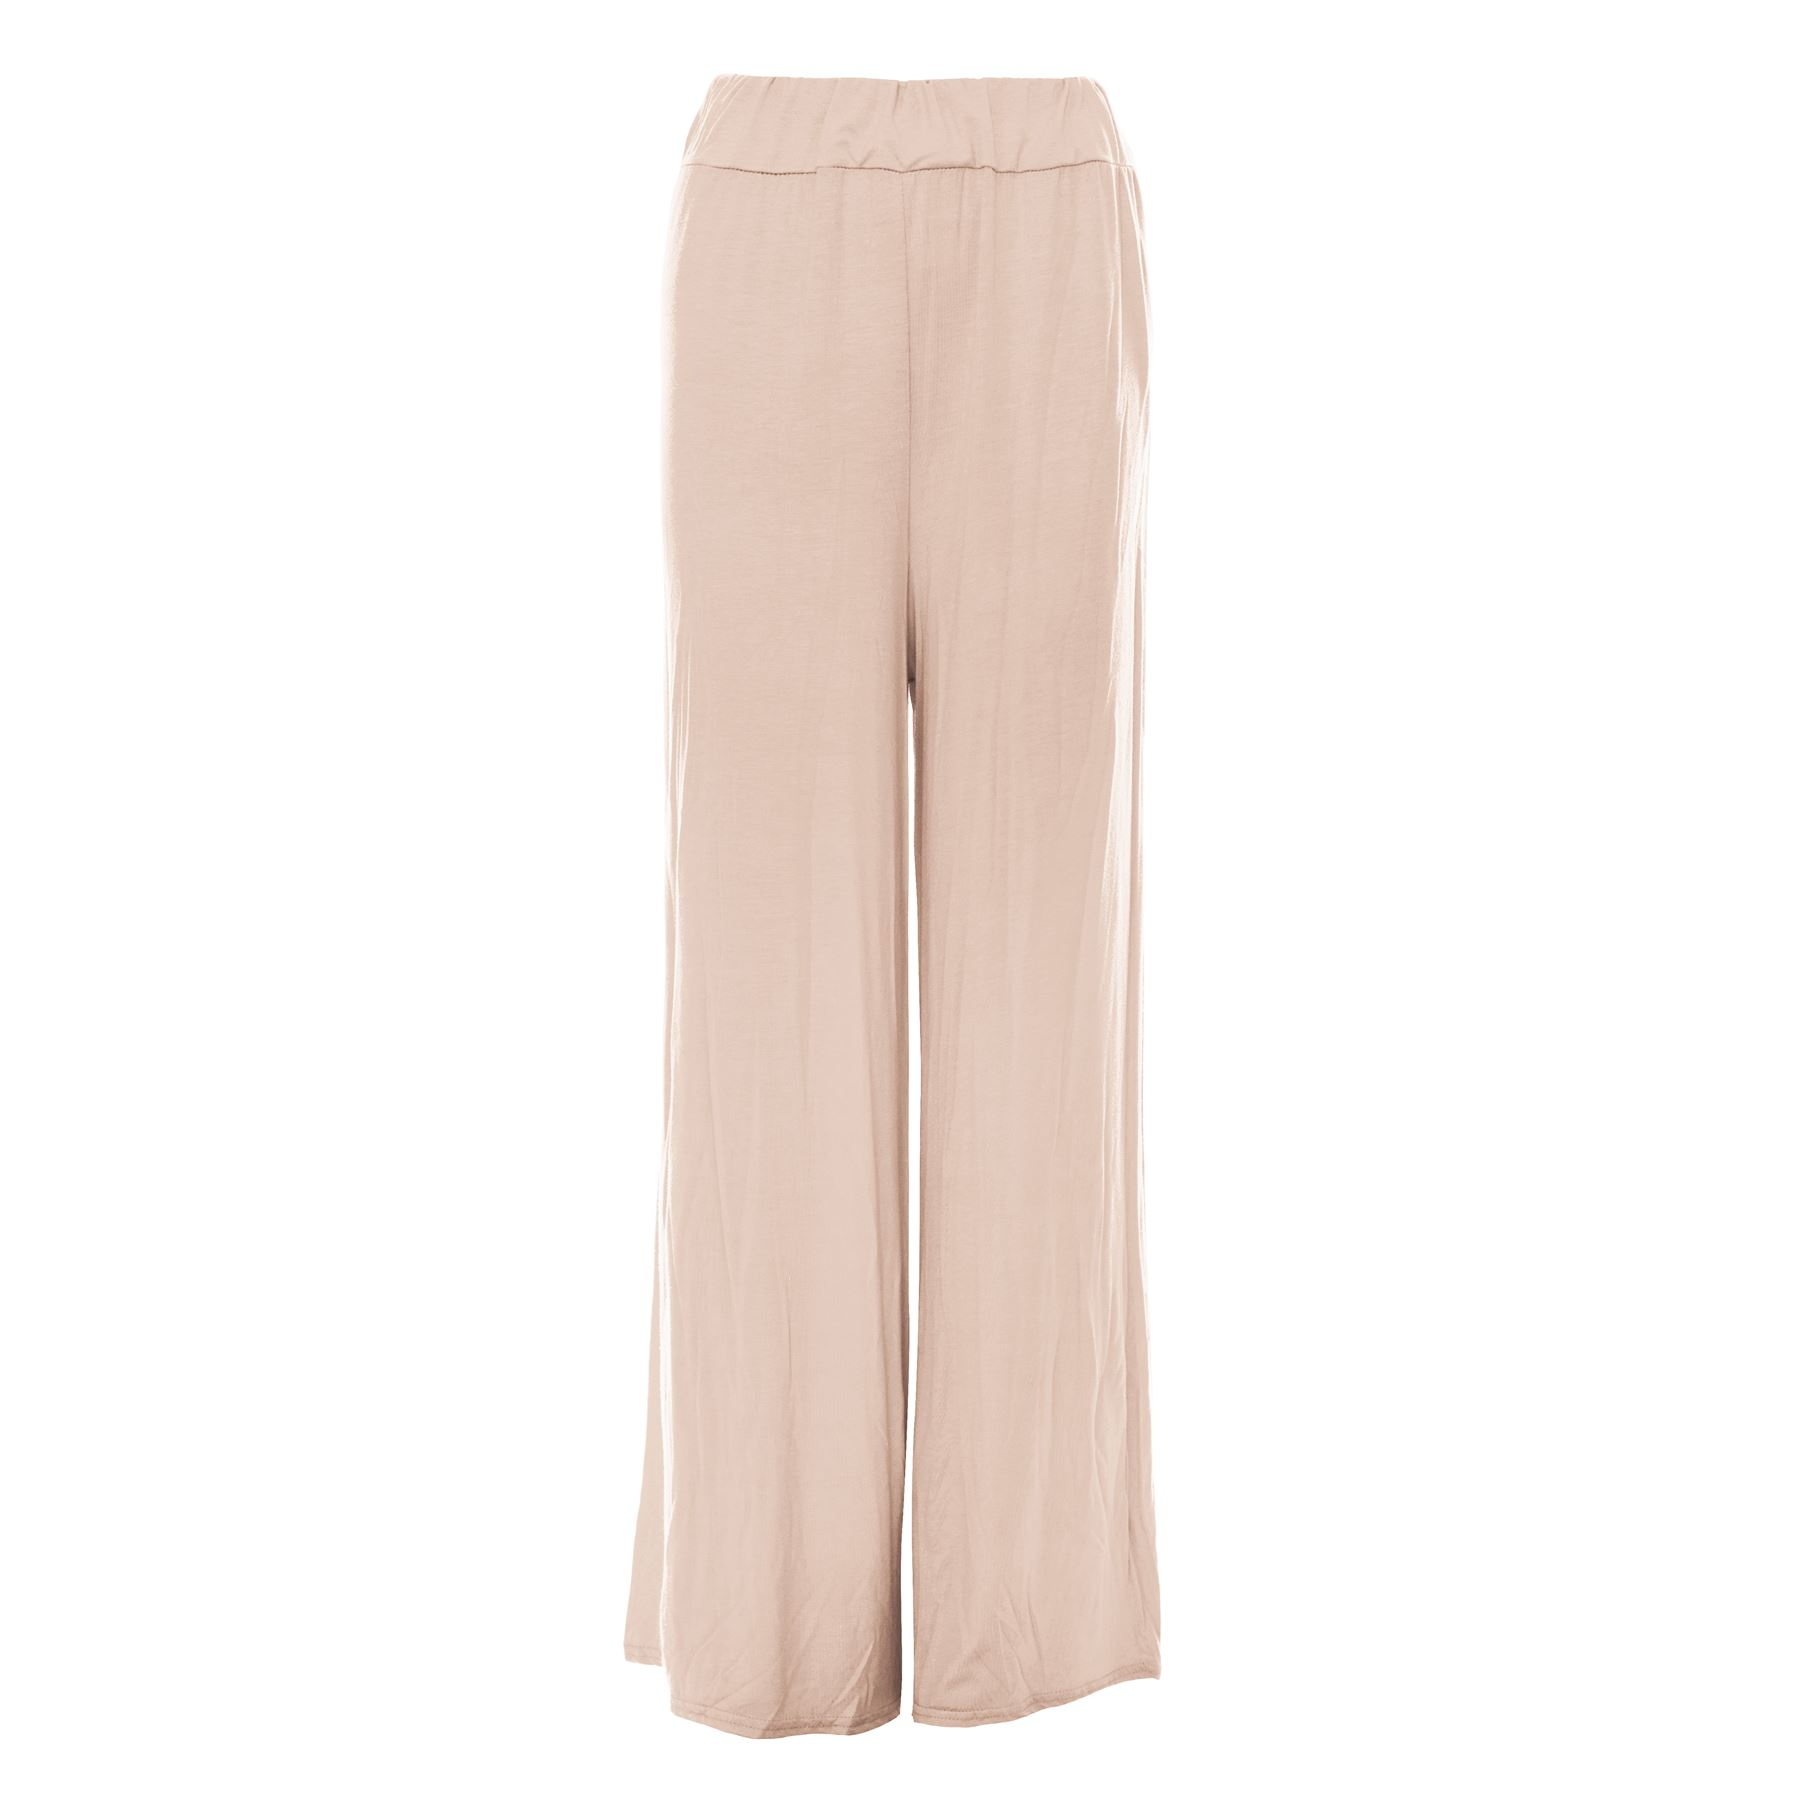 WOMEN'S WIDE LEG PANTS AND FLARE PANTS. Try our flare pants for women for an on-trend look you can kick around in. Short flare pants by DKNY or BASLER pair with block heels or flats for a fashion statement that supports comfortable mobility.